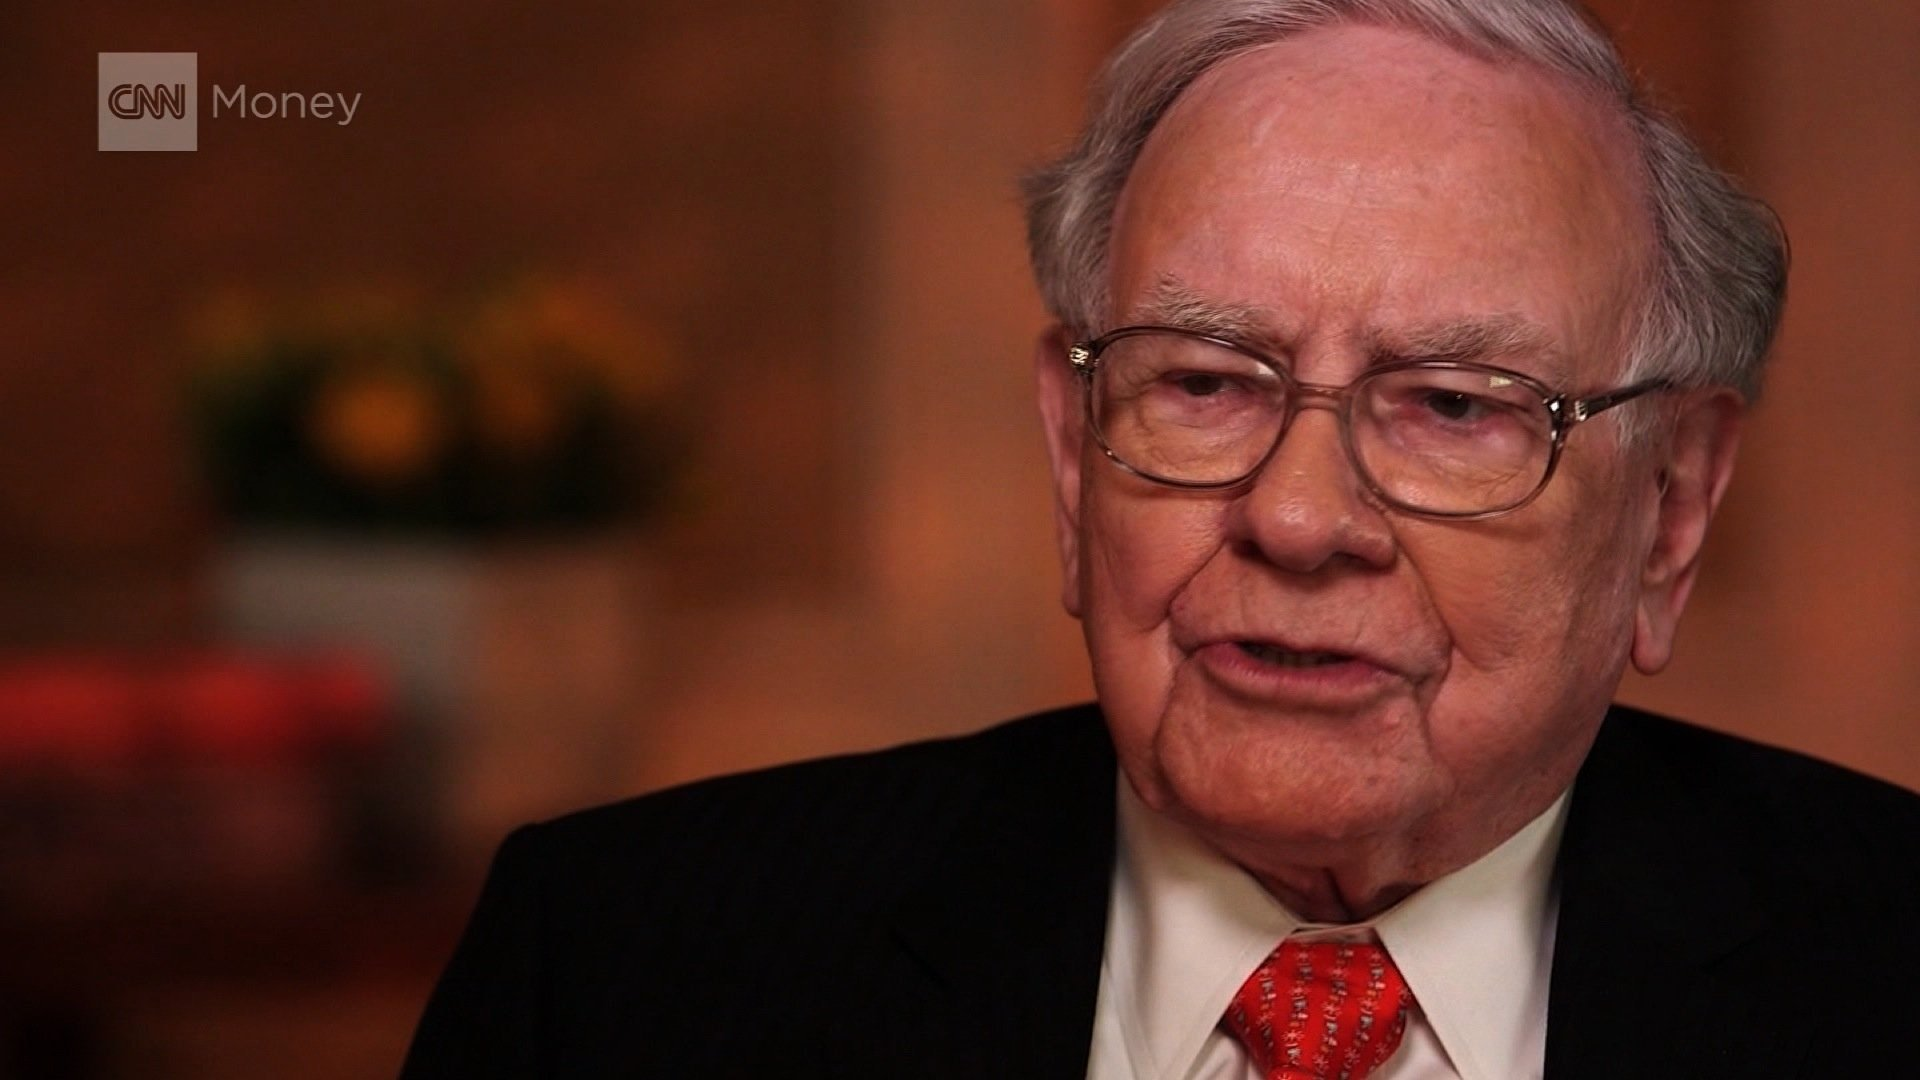 THE HIGHLIGHTS: Warren Buffett talks about investing, technology, risks, and mistakes